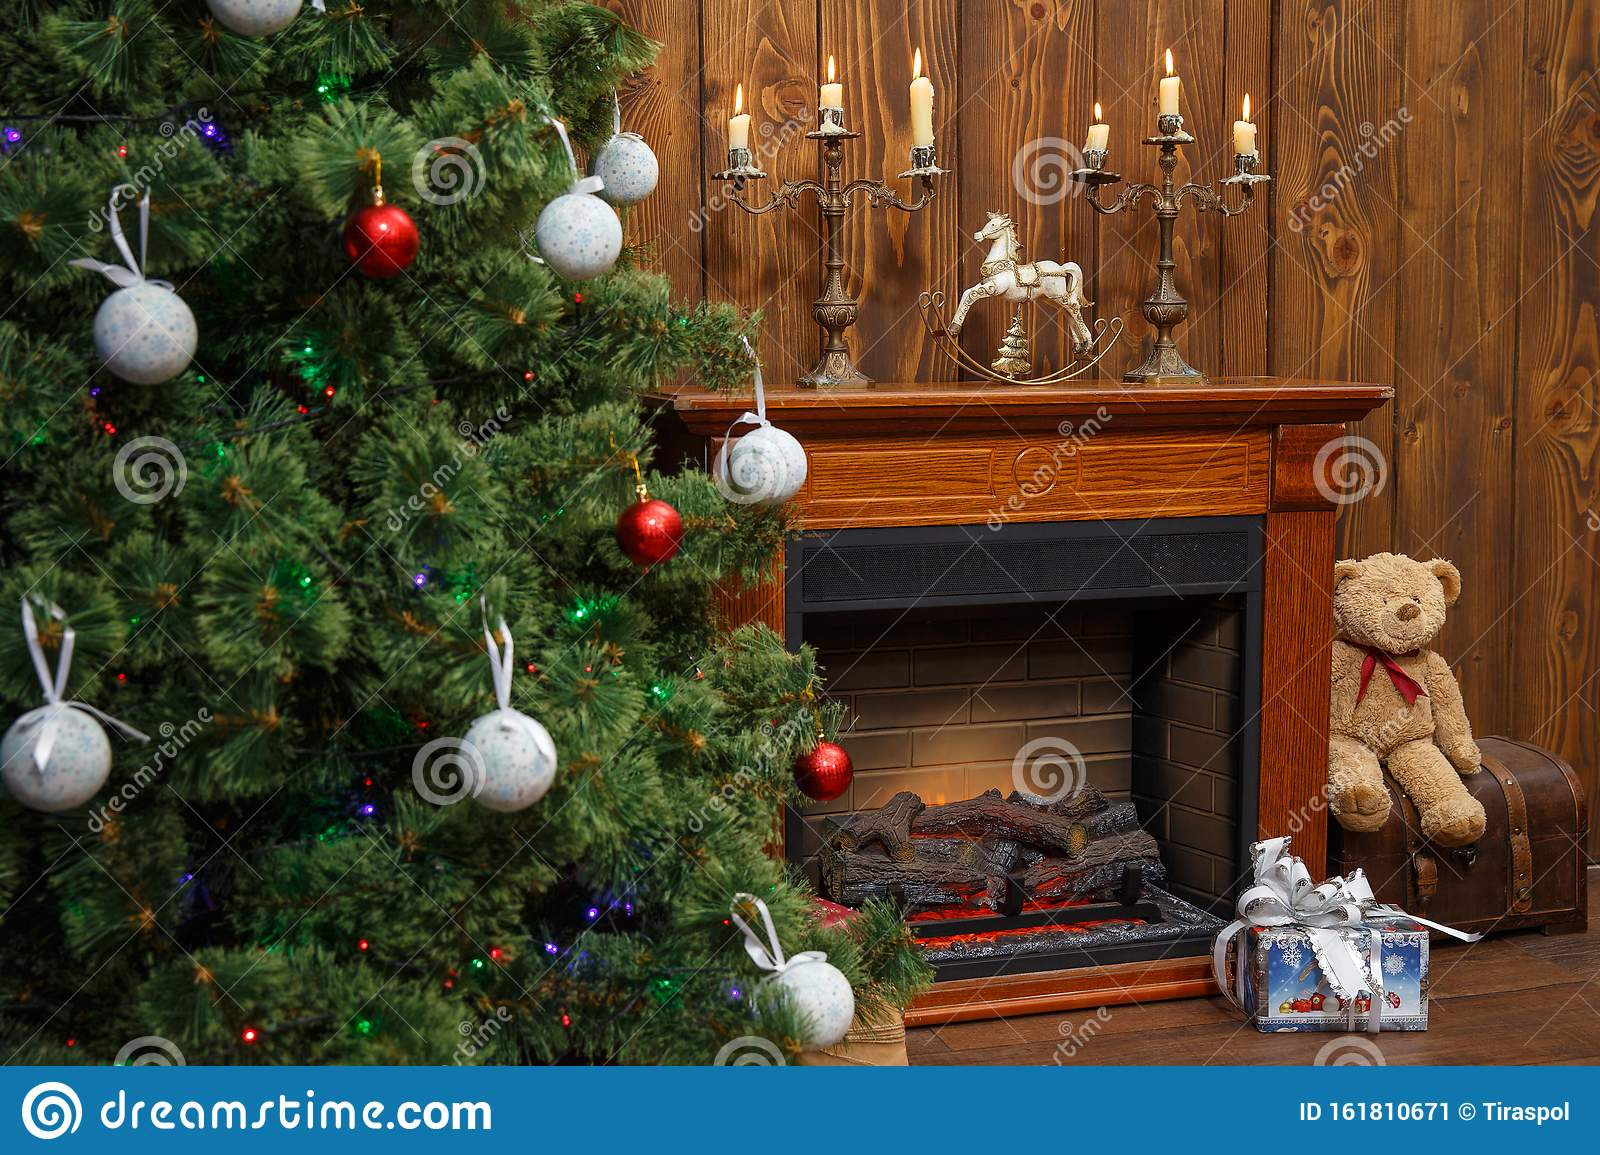 Christmas Interior With Toys And Lots Of Candles Wooden Fake Fireplace Christmas Tree Boxes In Studio Stock Image Image Of Fireplace Illuminated 161810671